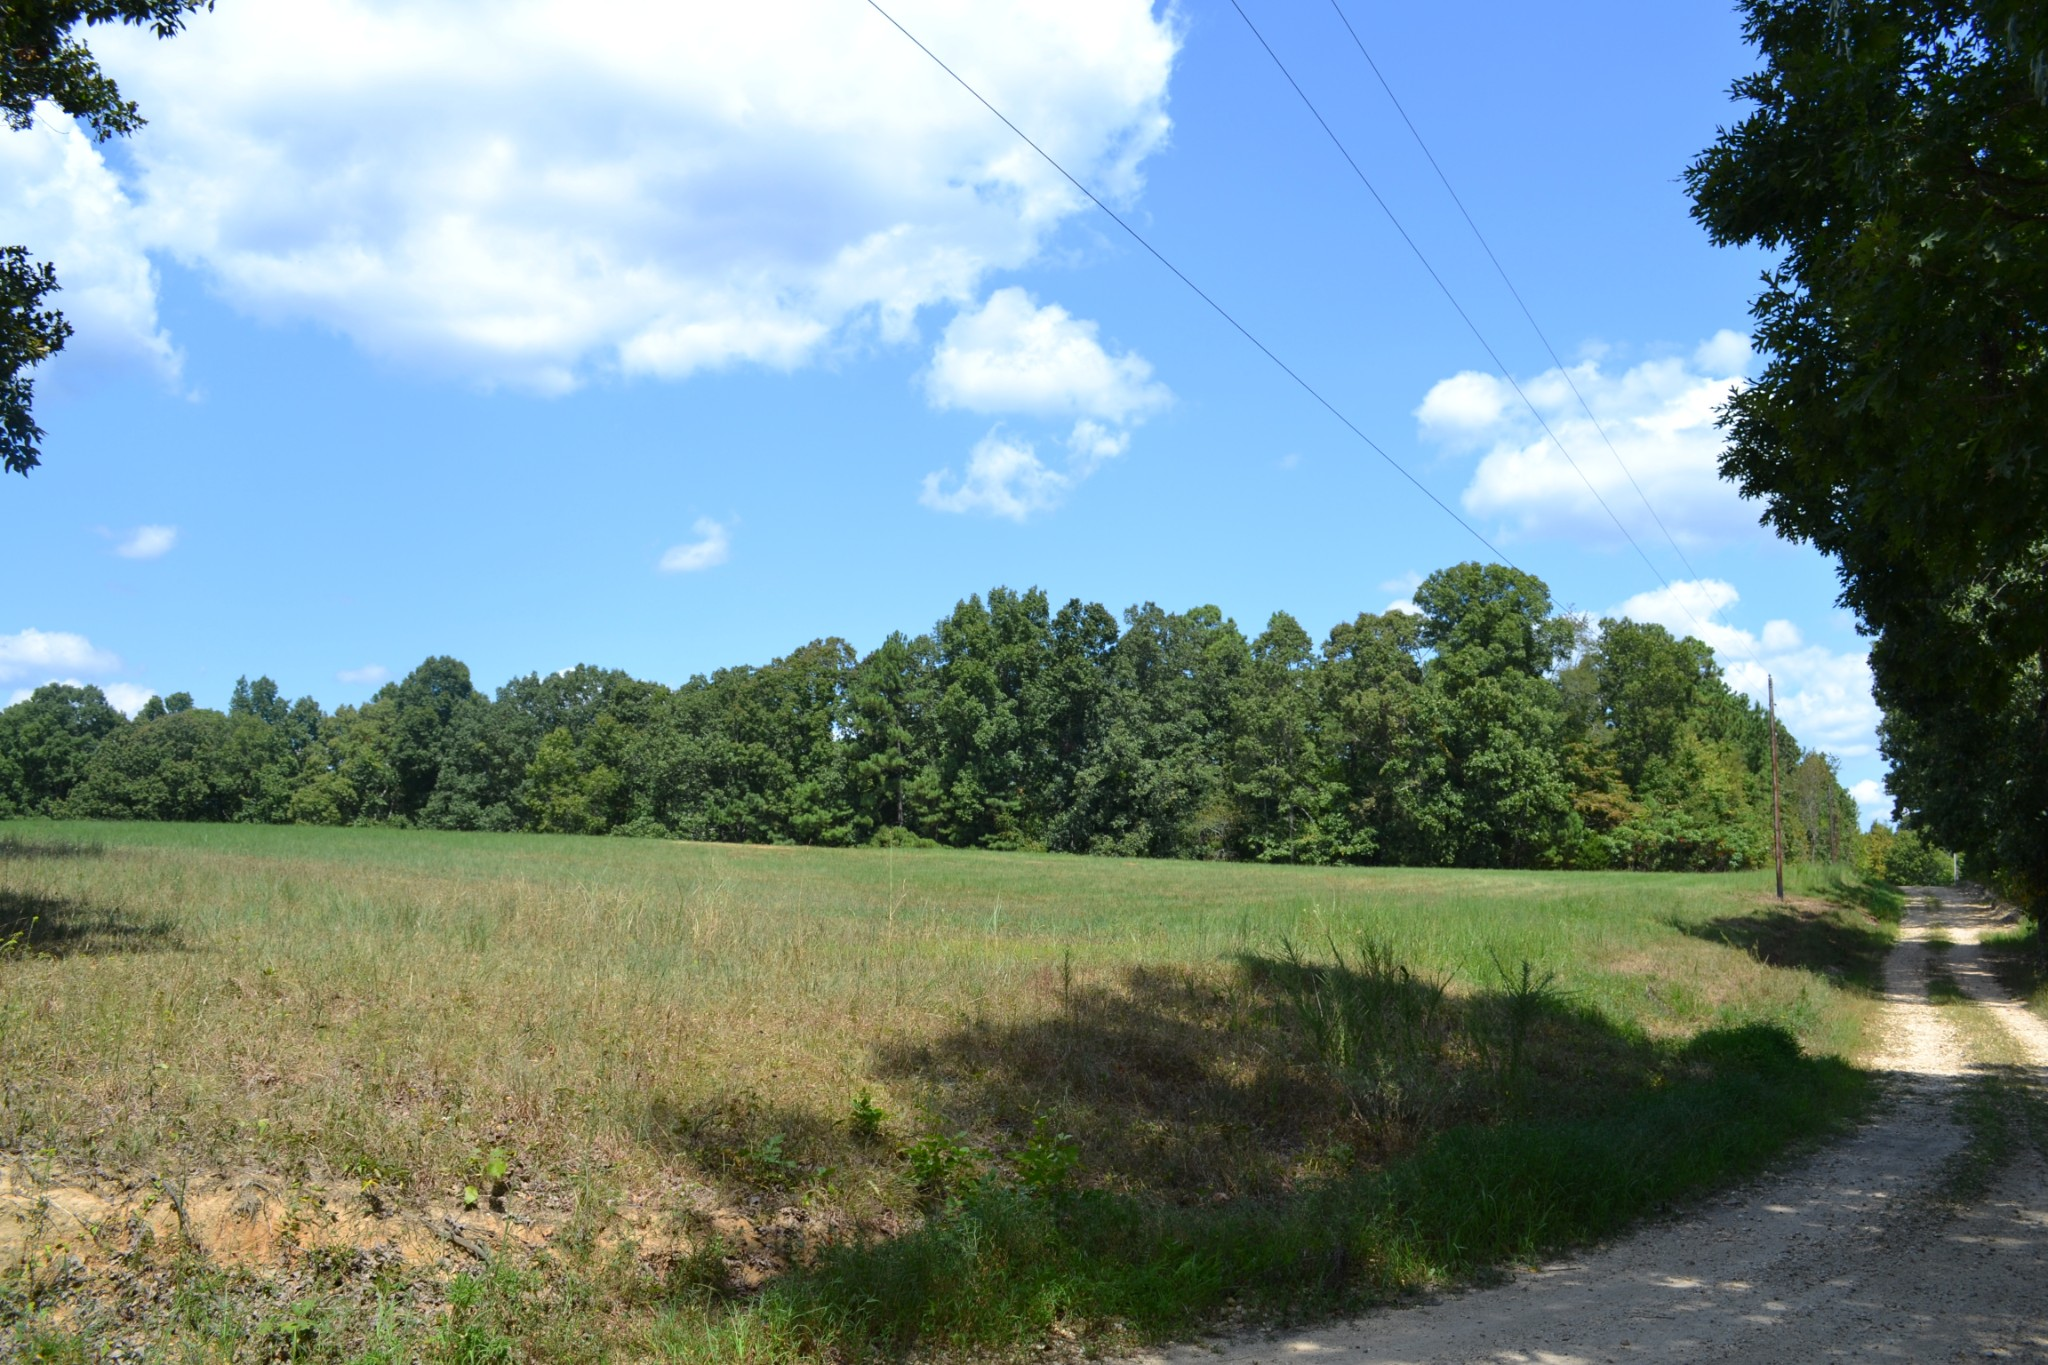 971 Robertson Rd - Tract 6, MC EWEN, TN 37101 - MC EWEN, TN real estate listing